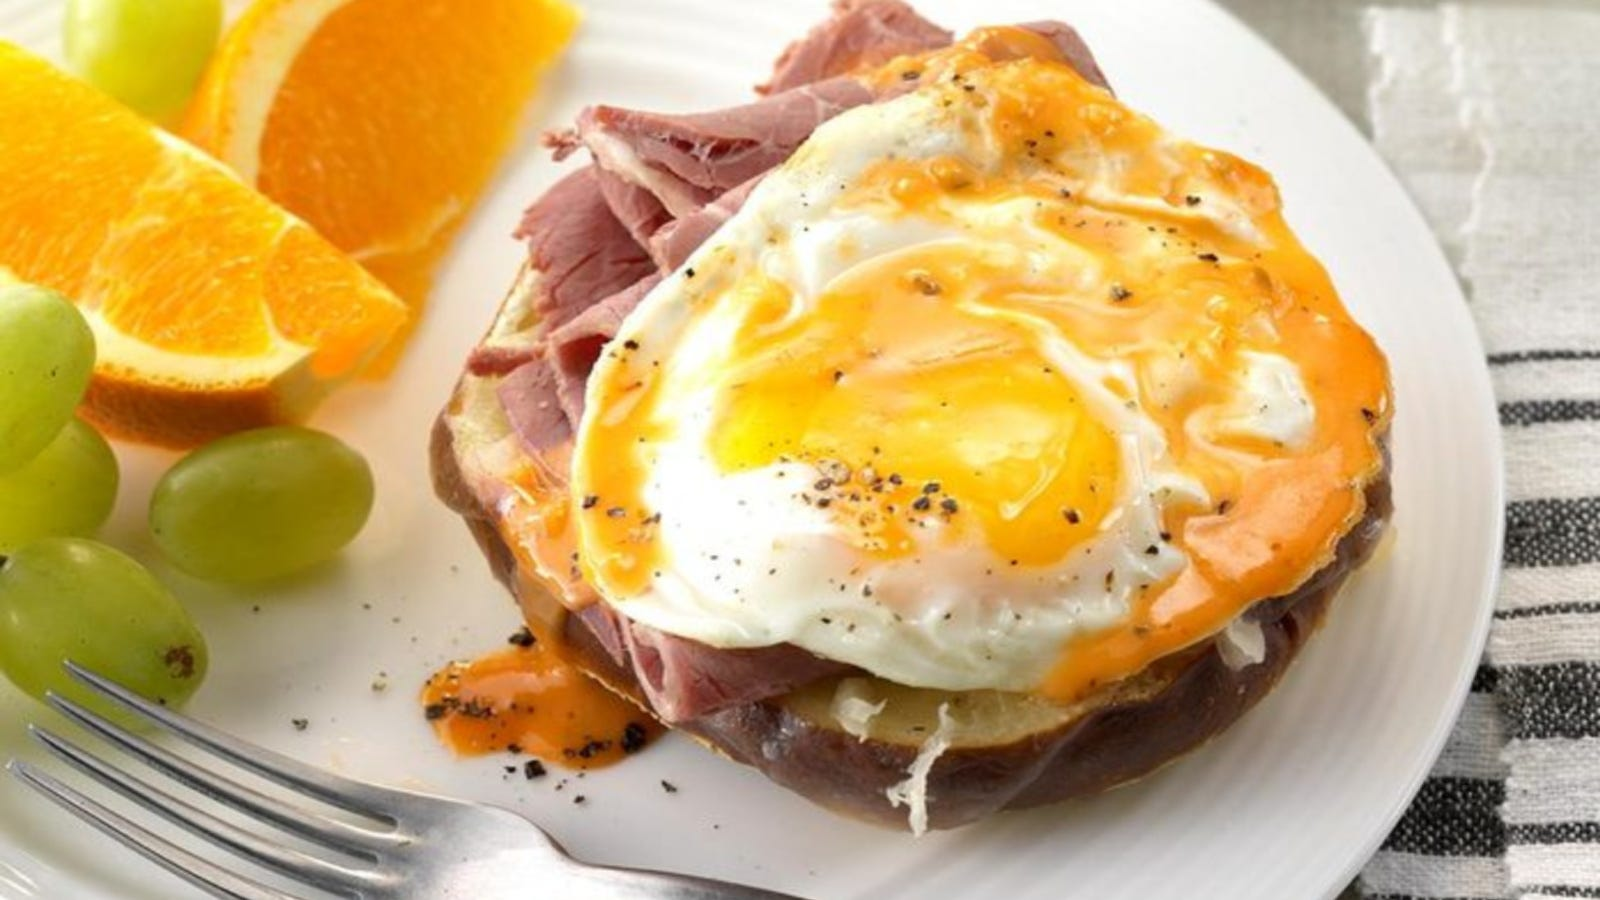 A fried egg on top of sliced corned beef on a pretzel roll, topped with a drizzle of Russian dressing with a side of grapes and organges.